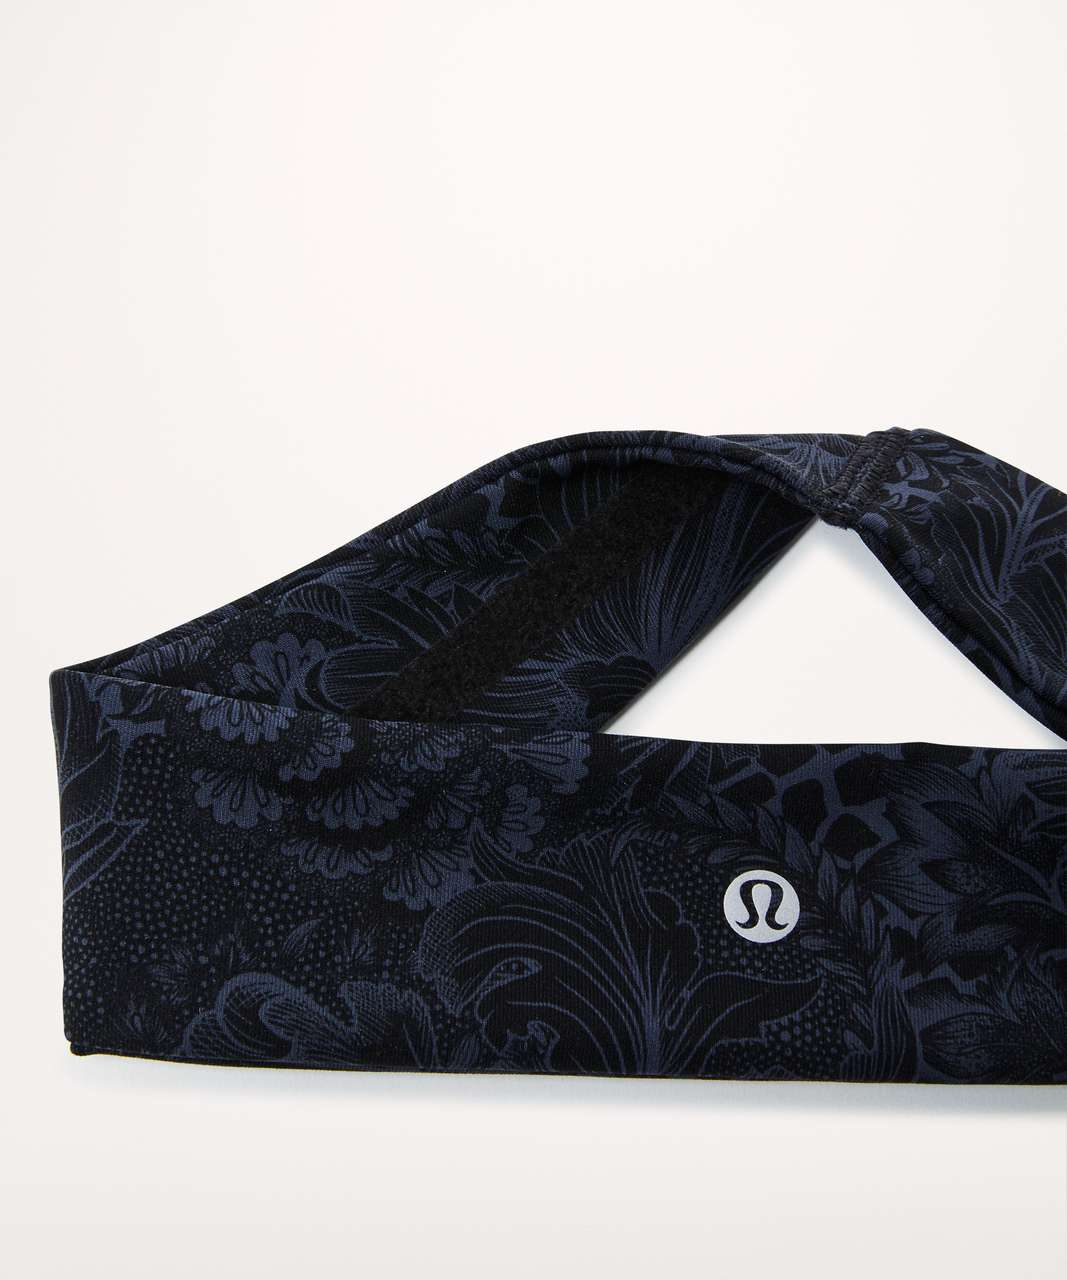 Lululemon Fly Away Tamer Headband II *Luxtreme - Nouveau Mach Blue Black